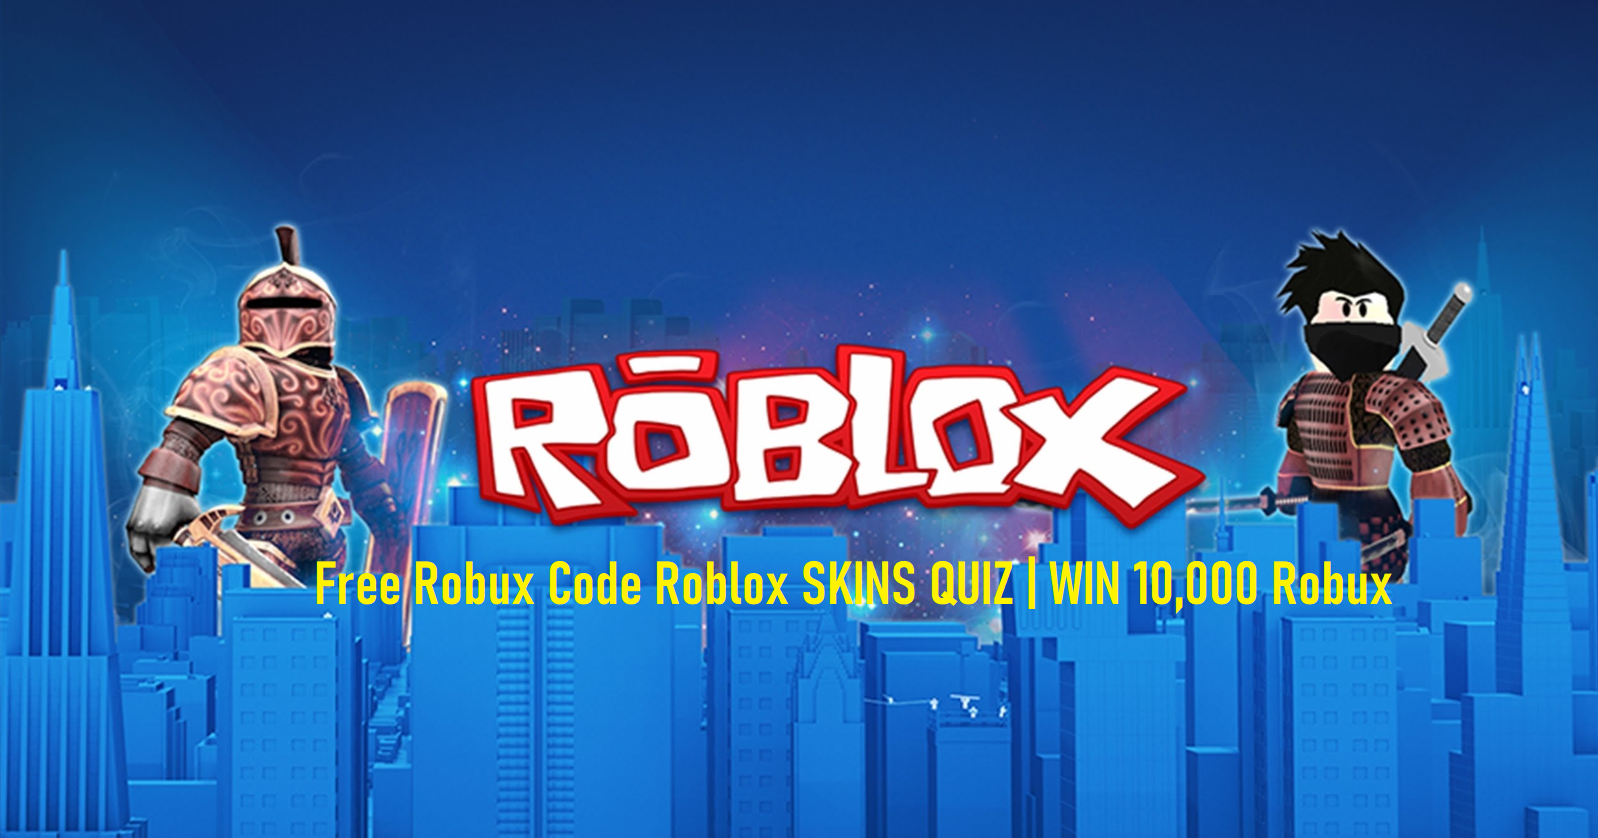 How to get free robux Roblox